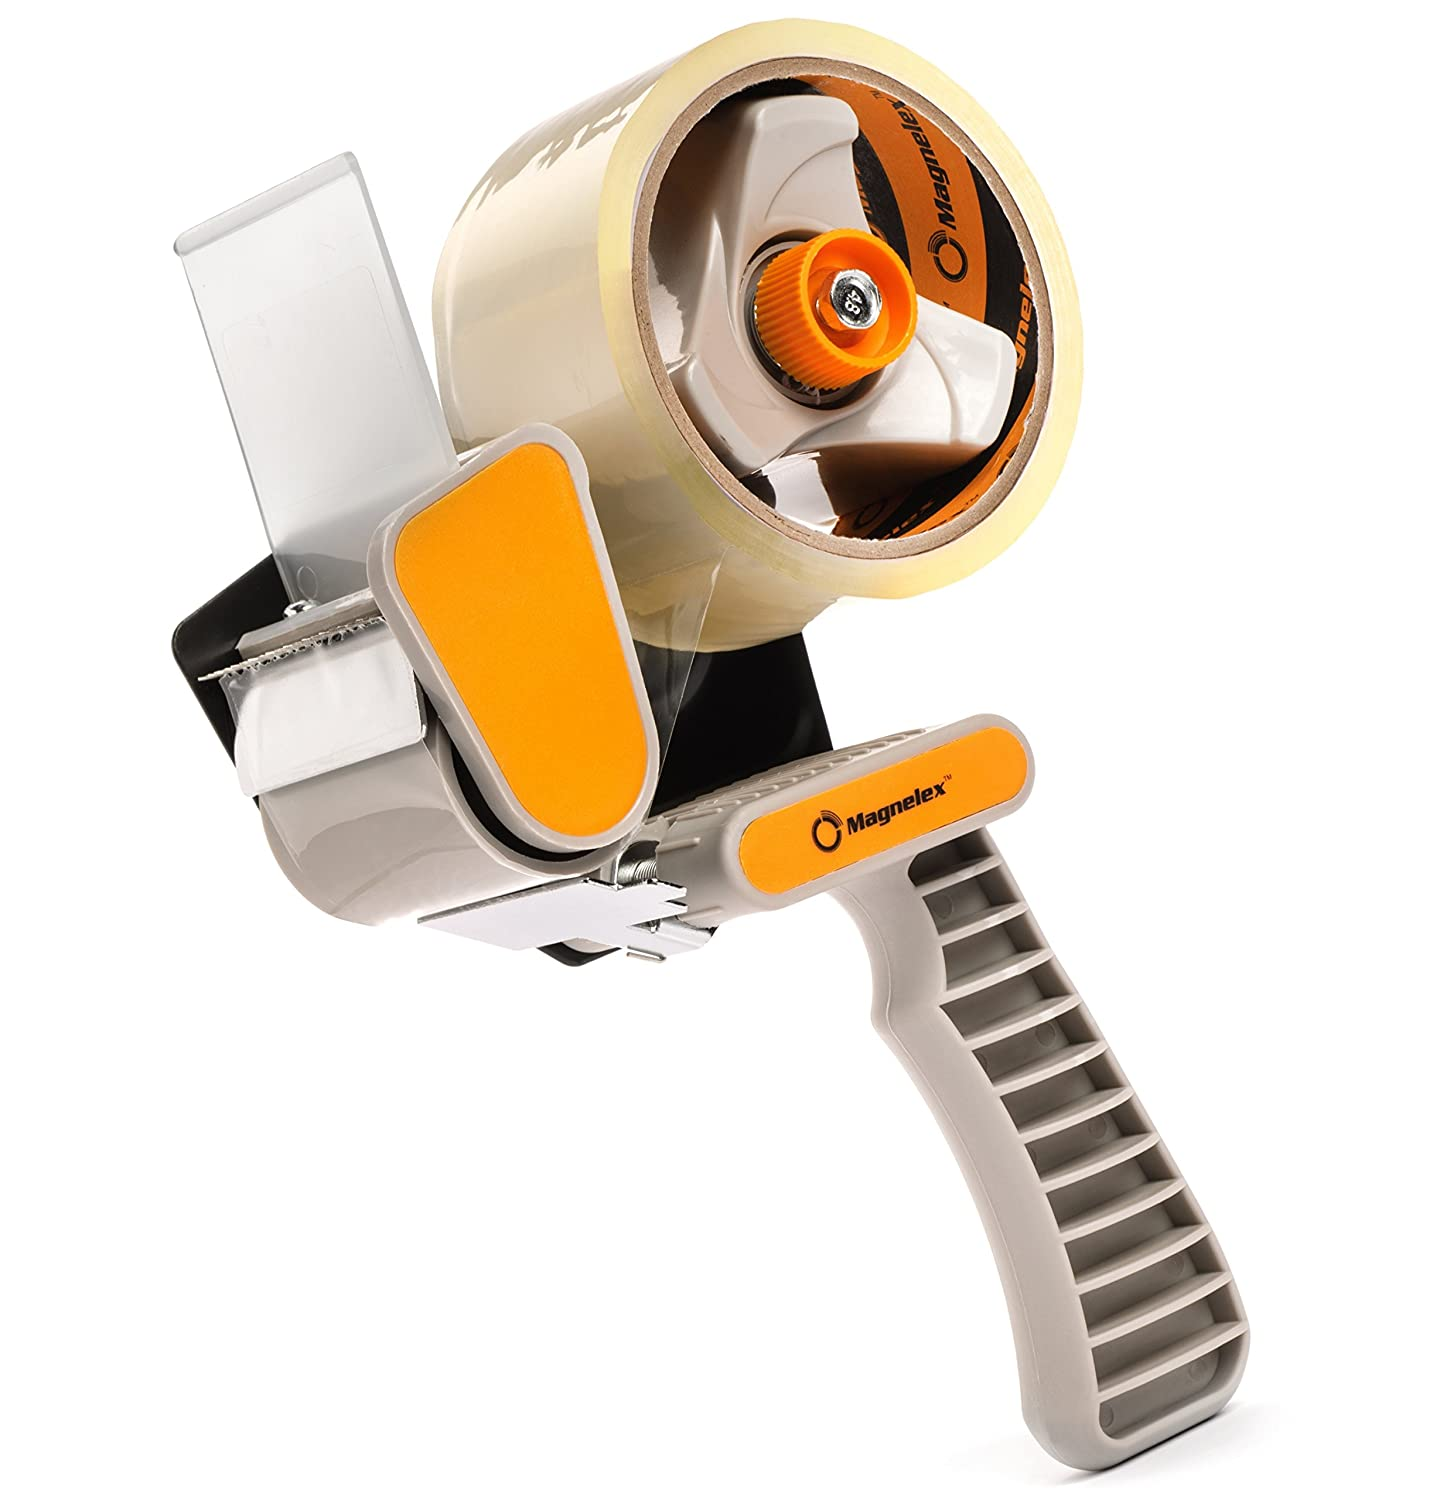 Tapexpert Packing Tape Gun with 1 Roll of Packaging Tape, Easy to Tape Boxes, Seal Cartons, Easy Side Loading, Lightweight and Ergonomic Tape Dispenser for Shipping, Packaging and Moving: Industrial & Scientific